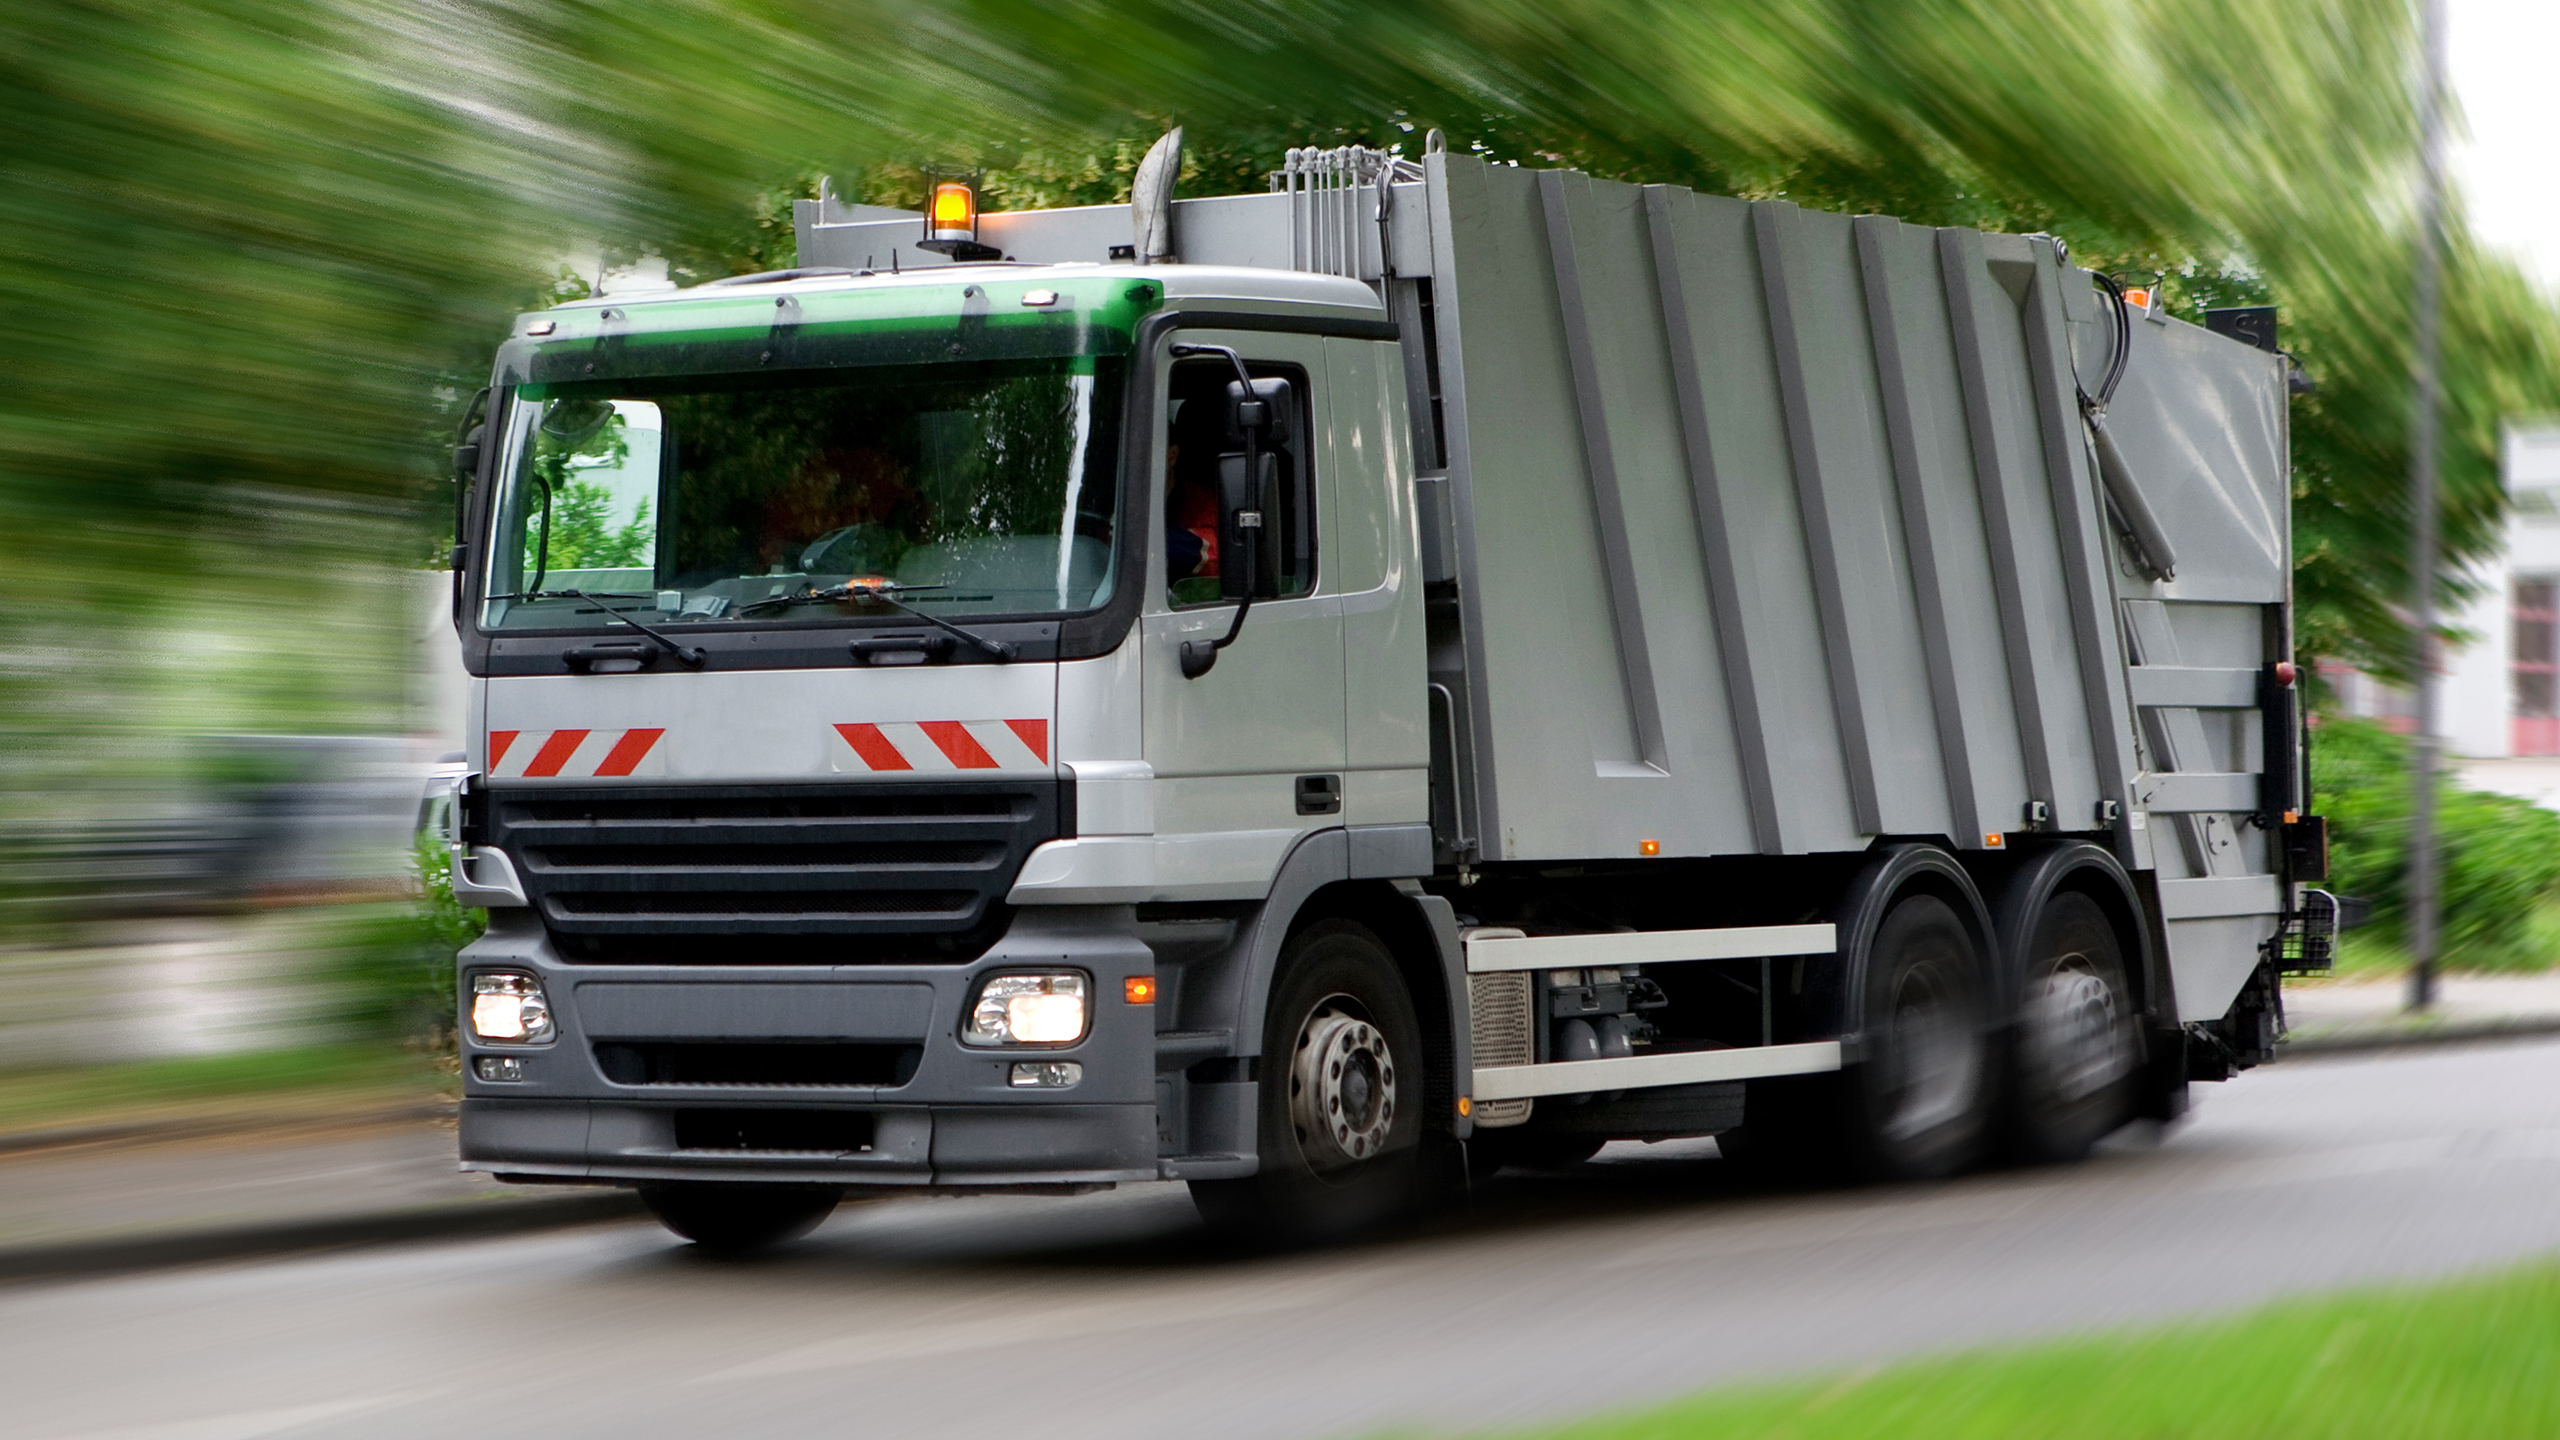 Waste Services | Rapid-Response Waste Collections